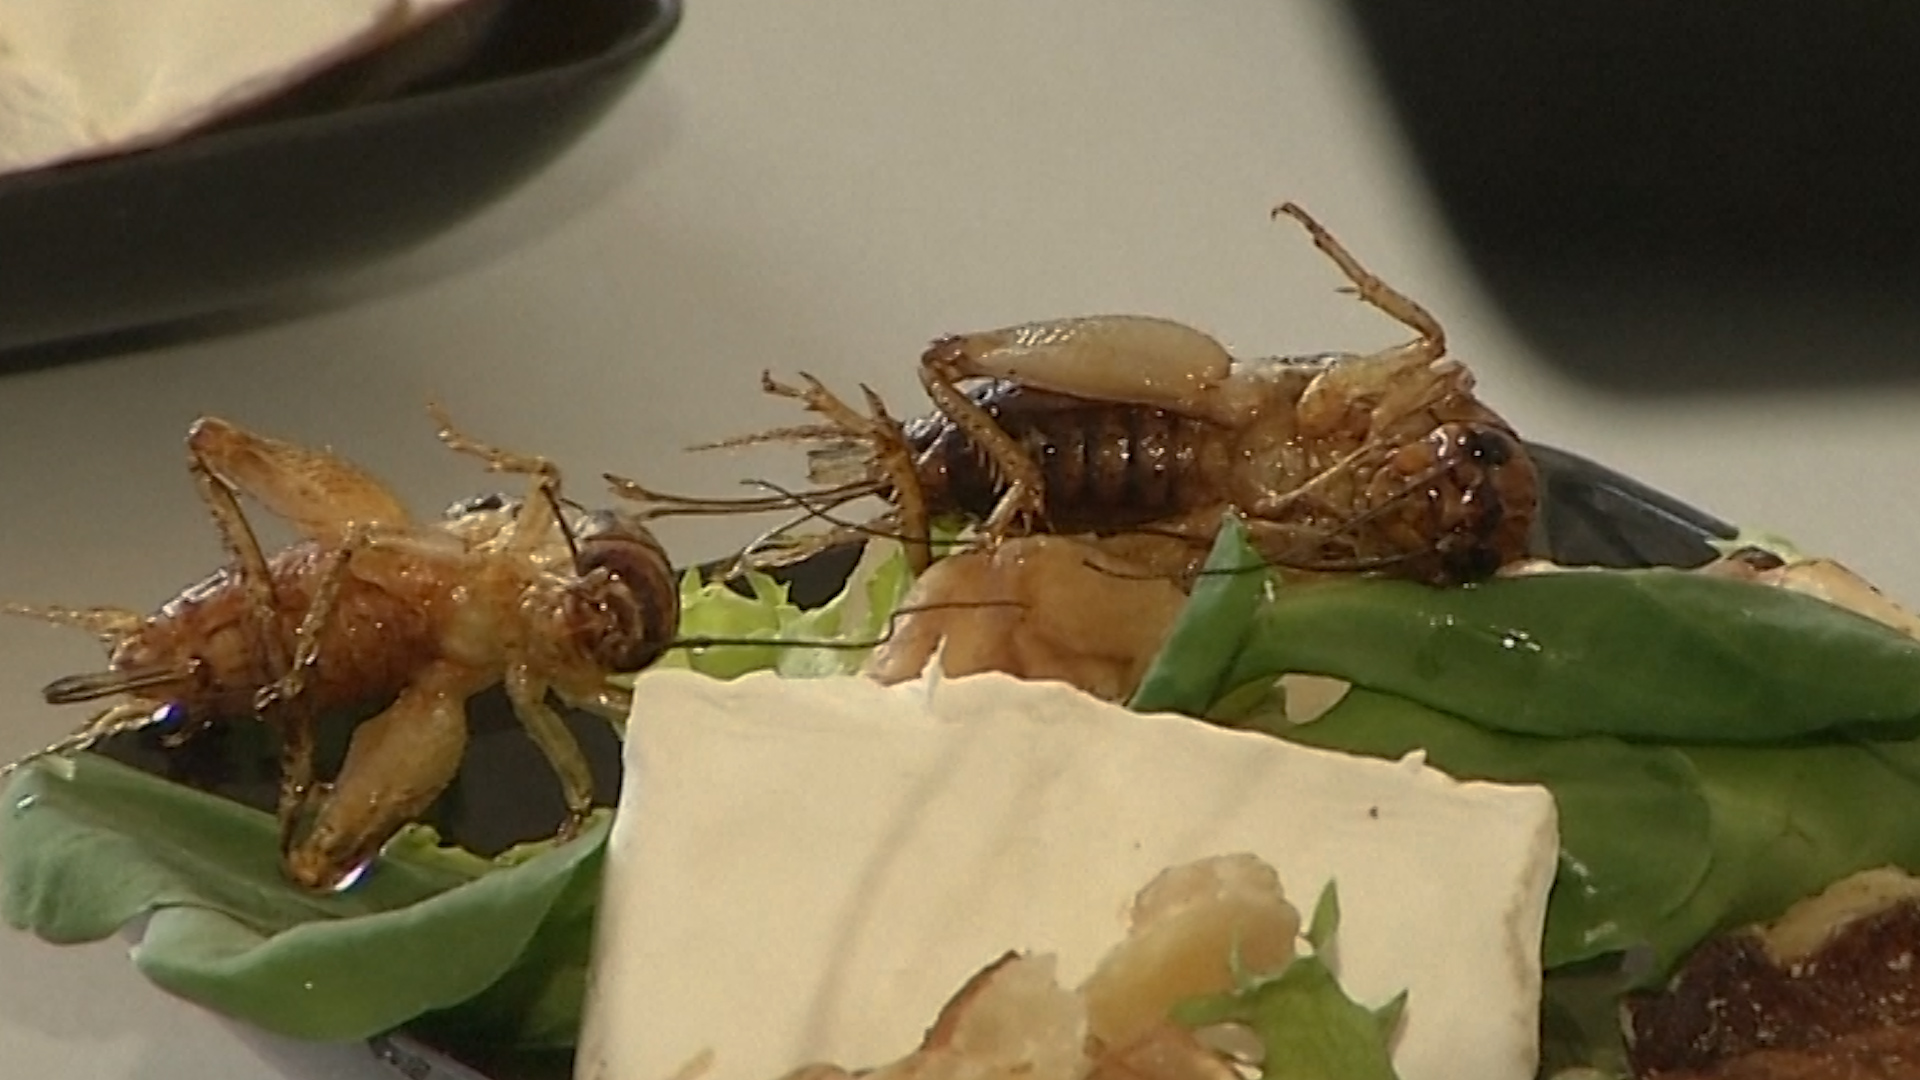 Cricket salad: one way scientists are trying to make insects more appetizing.